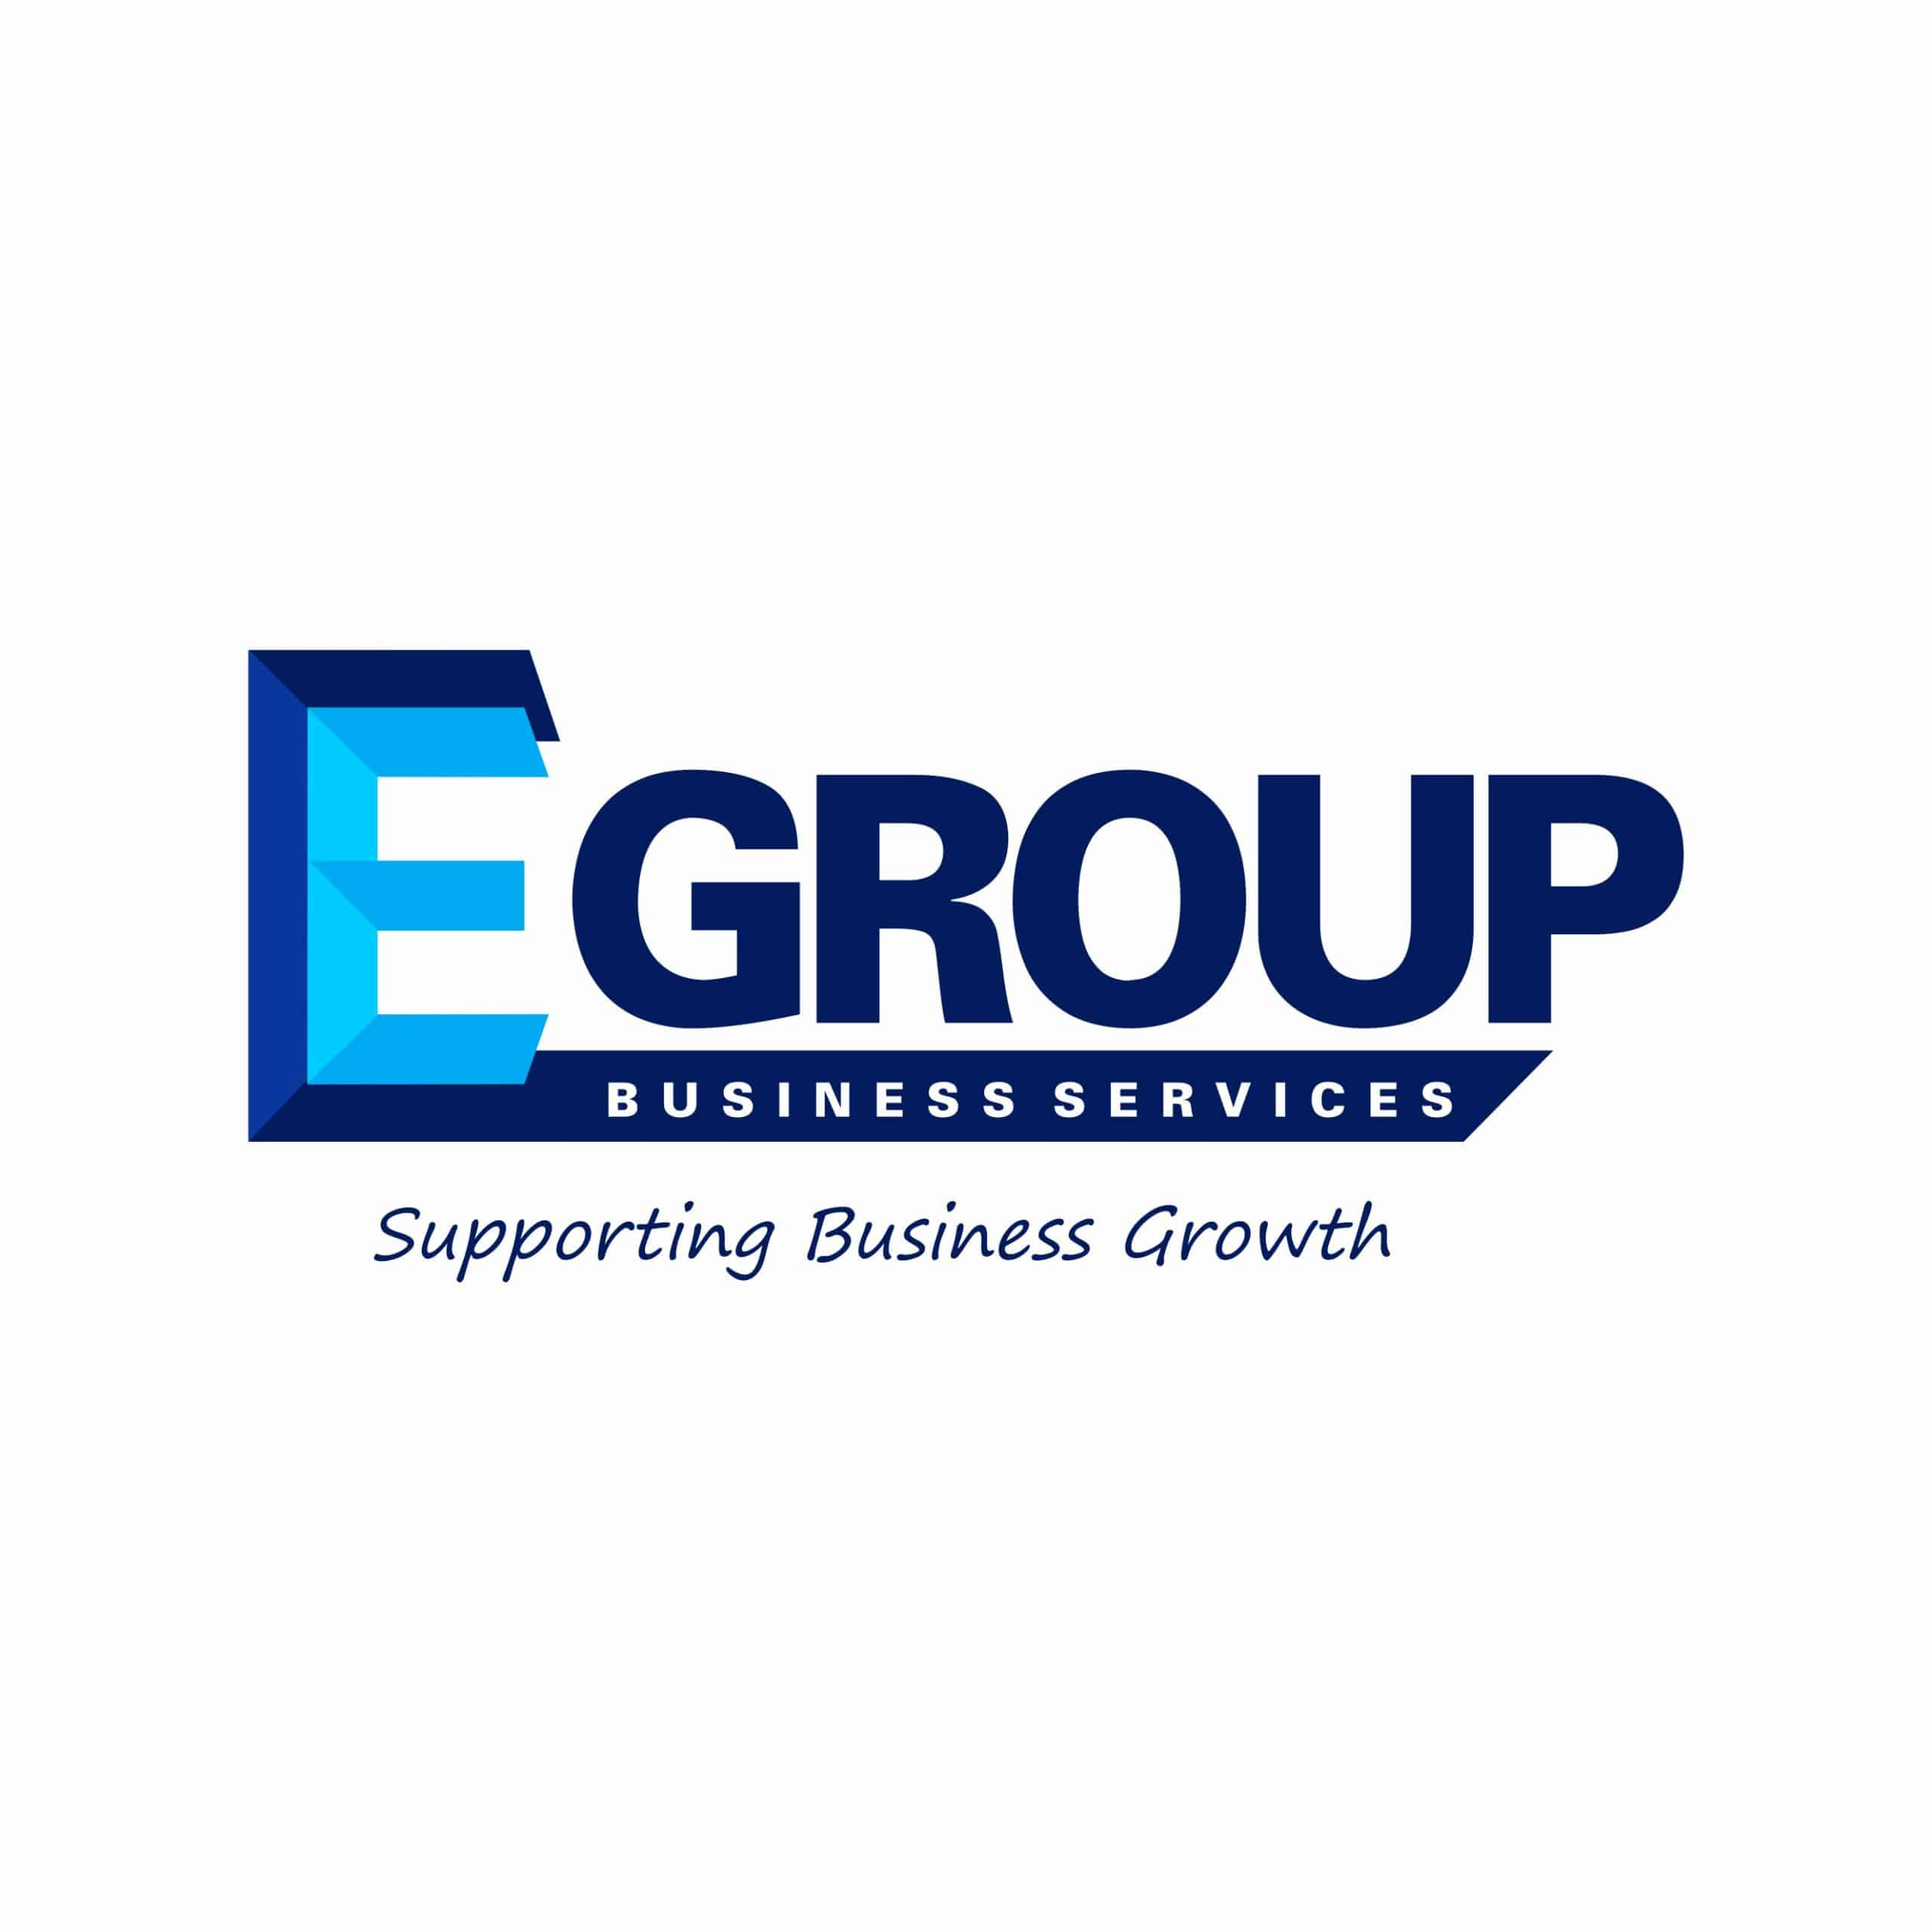 Logo gallery 54 EGroup